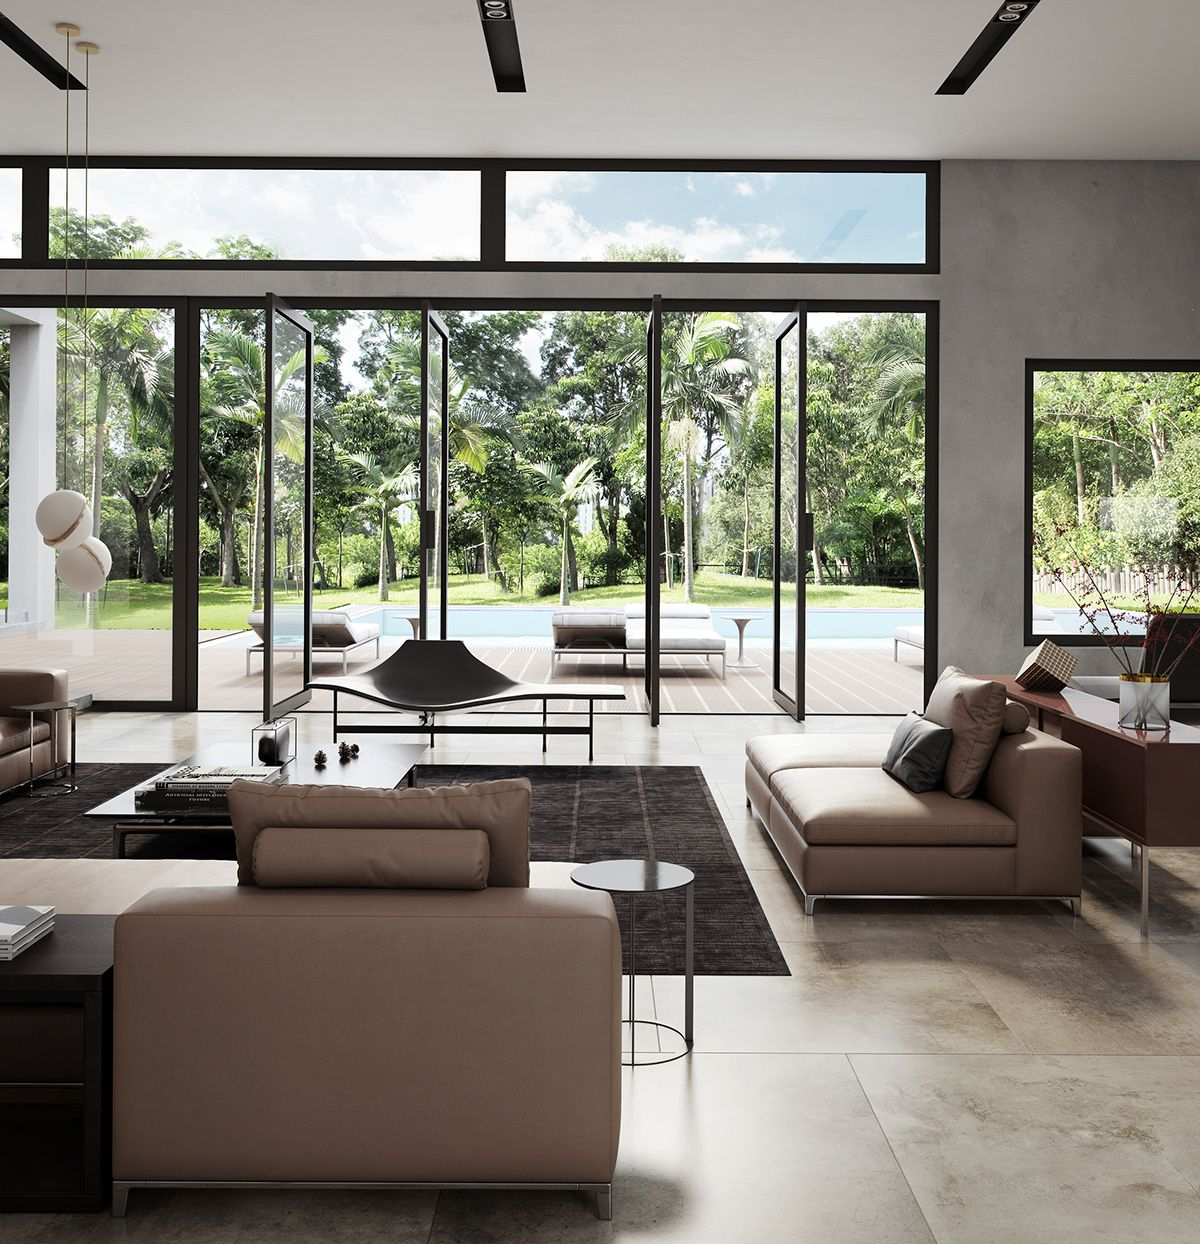 Villa In Sicily B B Italia On Behance Modern Interior Design